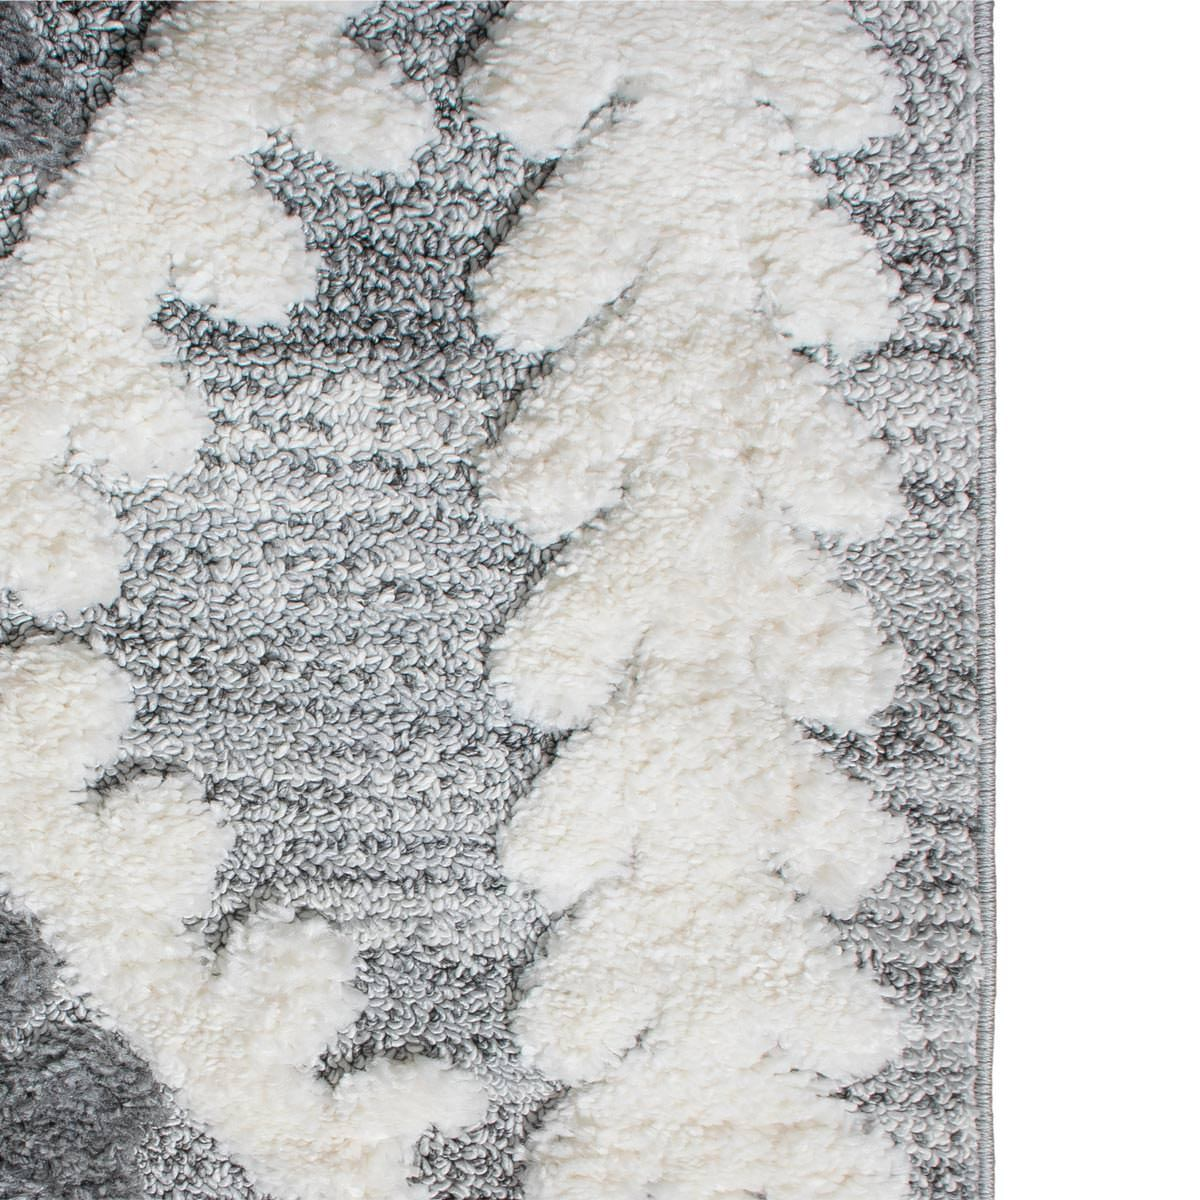 Atlas Rug 08 Grey Runner - Fringes 3